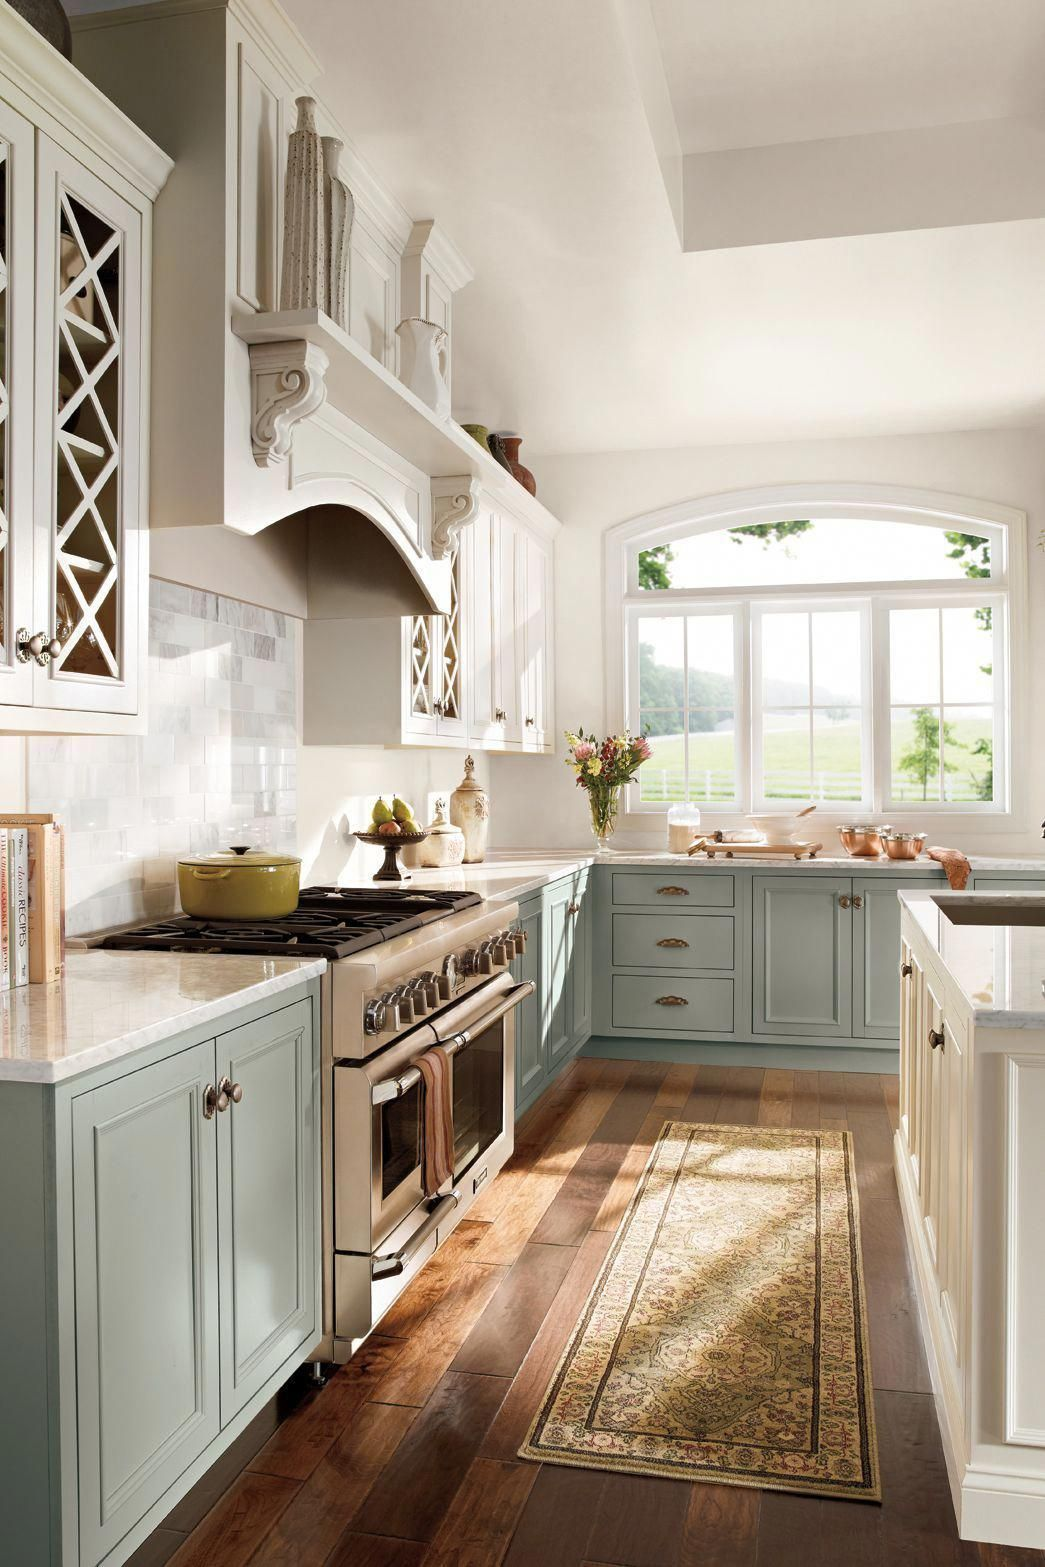 combinations color kitchen cabinet painted ideas combinationskitchencabinet kitchen on kitchen cabinet color ideas id=30597